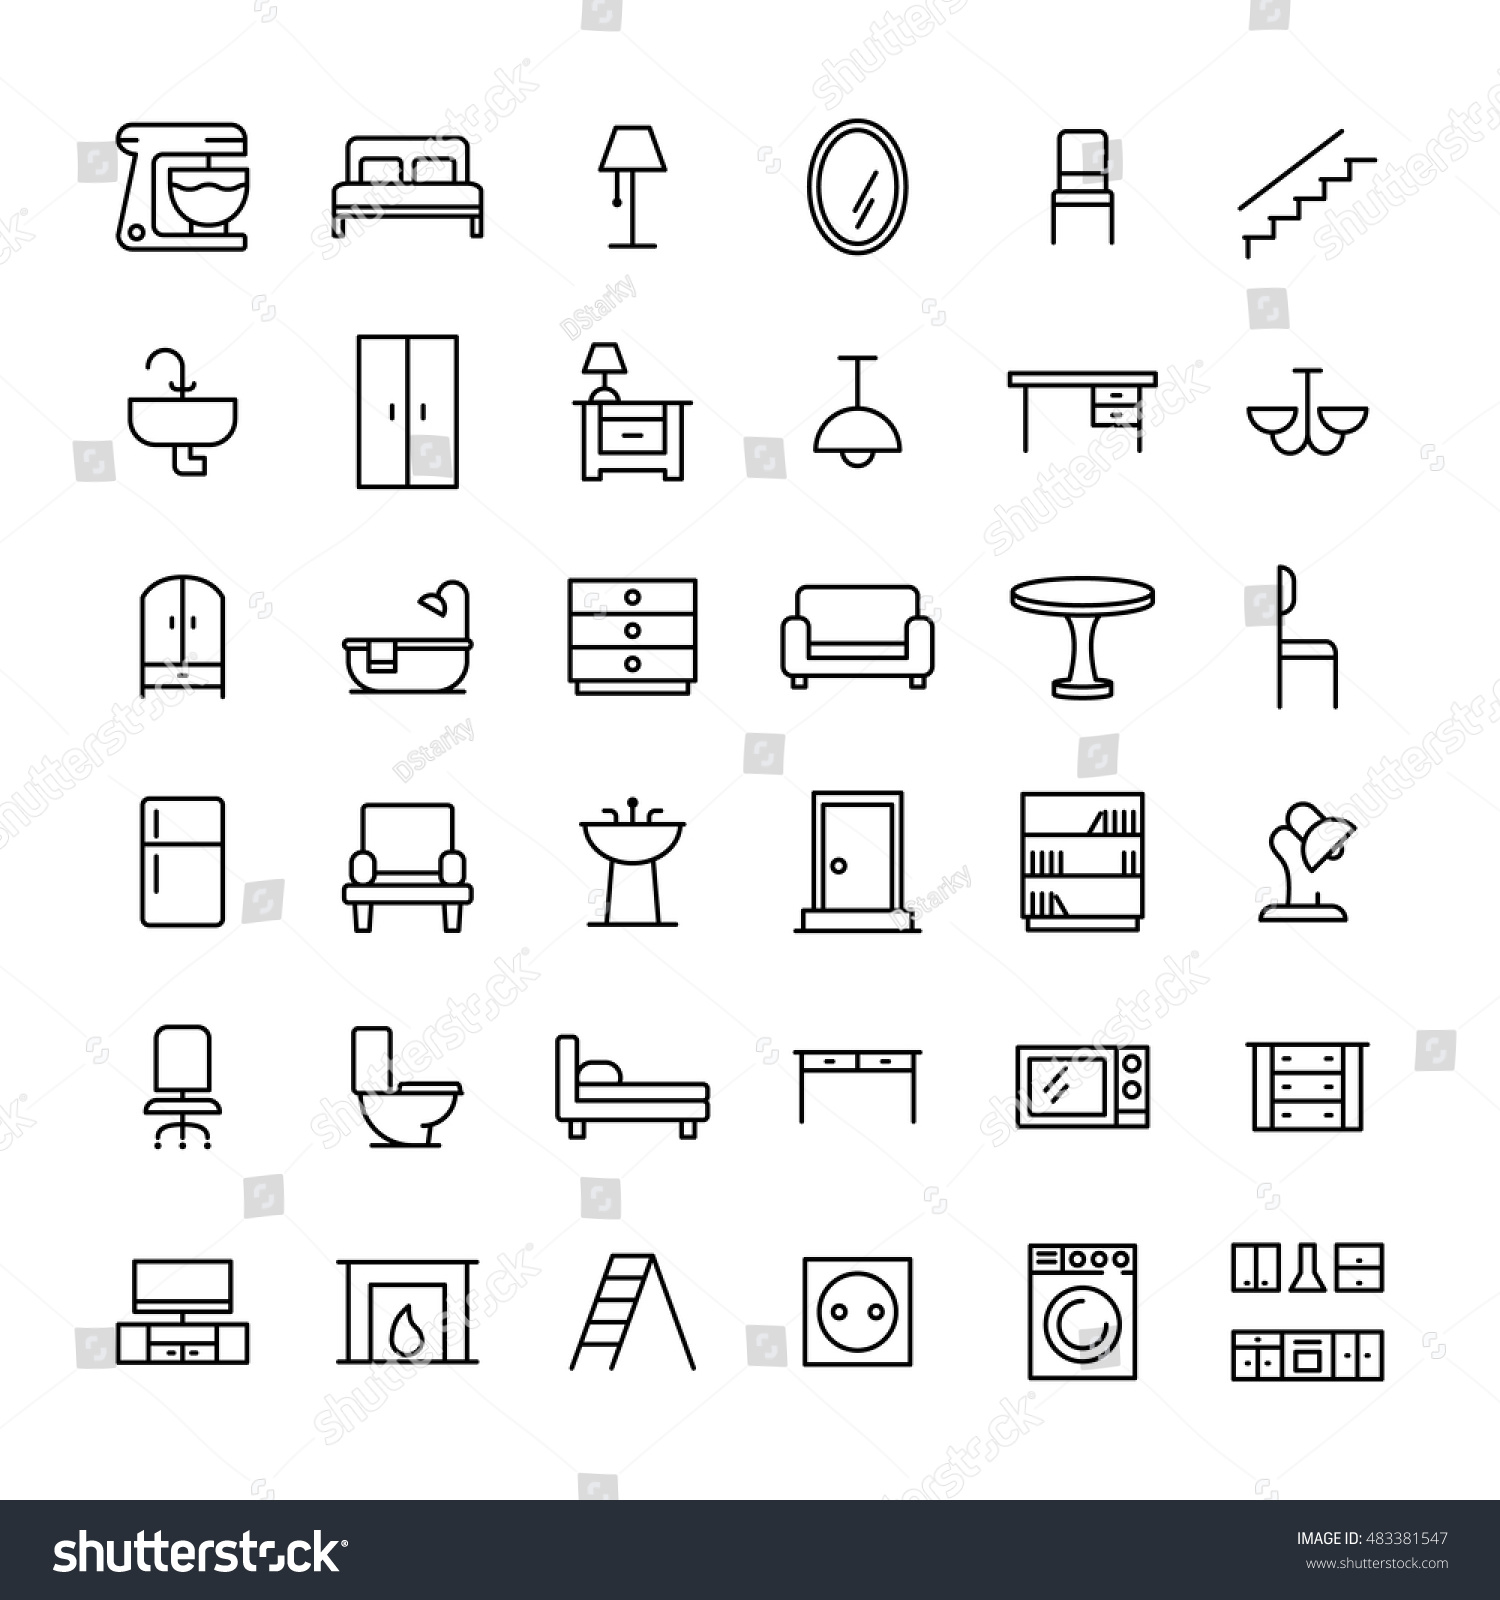 Set furniture icons modern thin line stock vector 483381547 set of furniture icons in modern thin line style high quality black outline home symbols buycottarizona Image collections